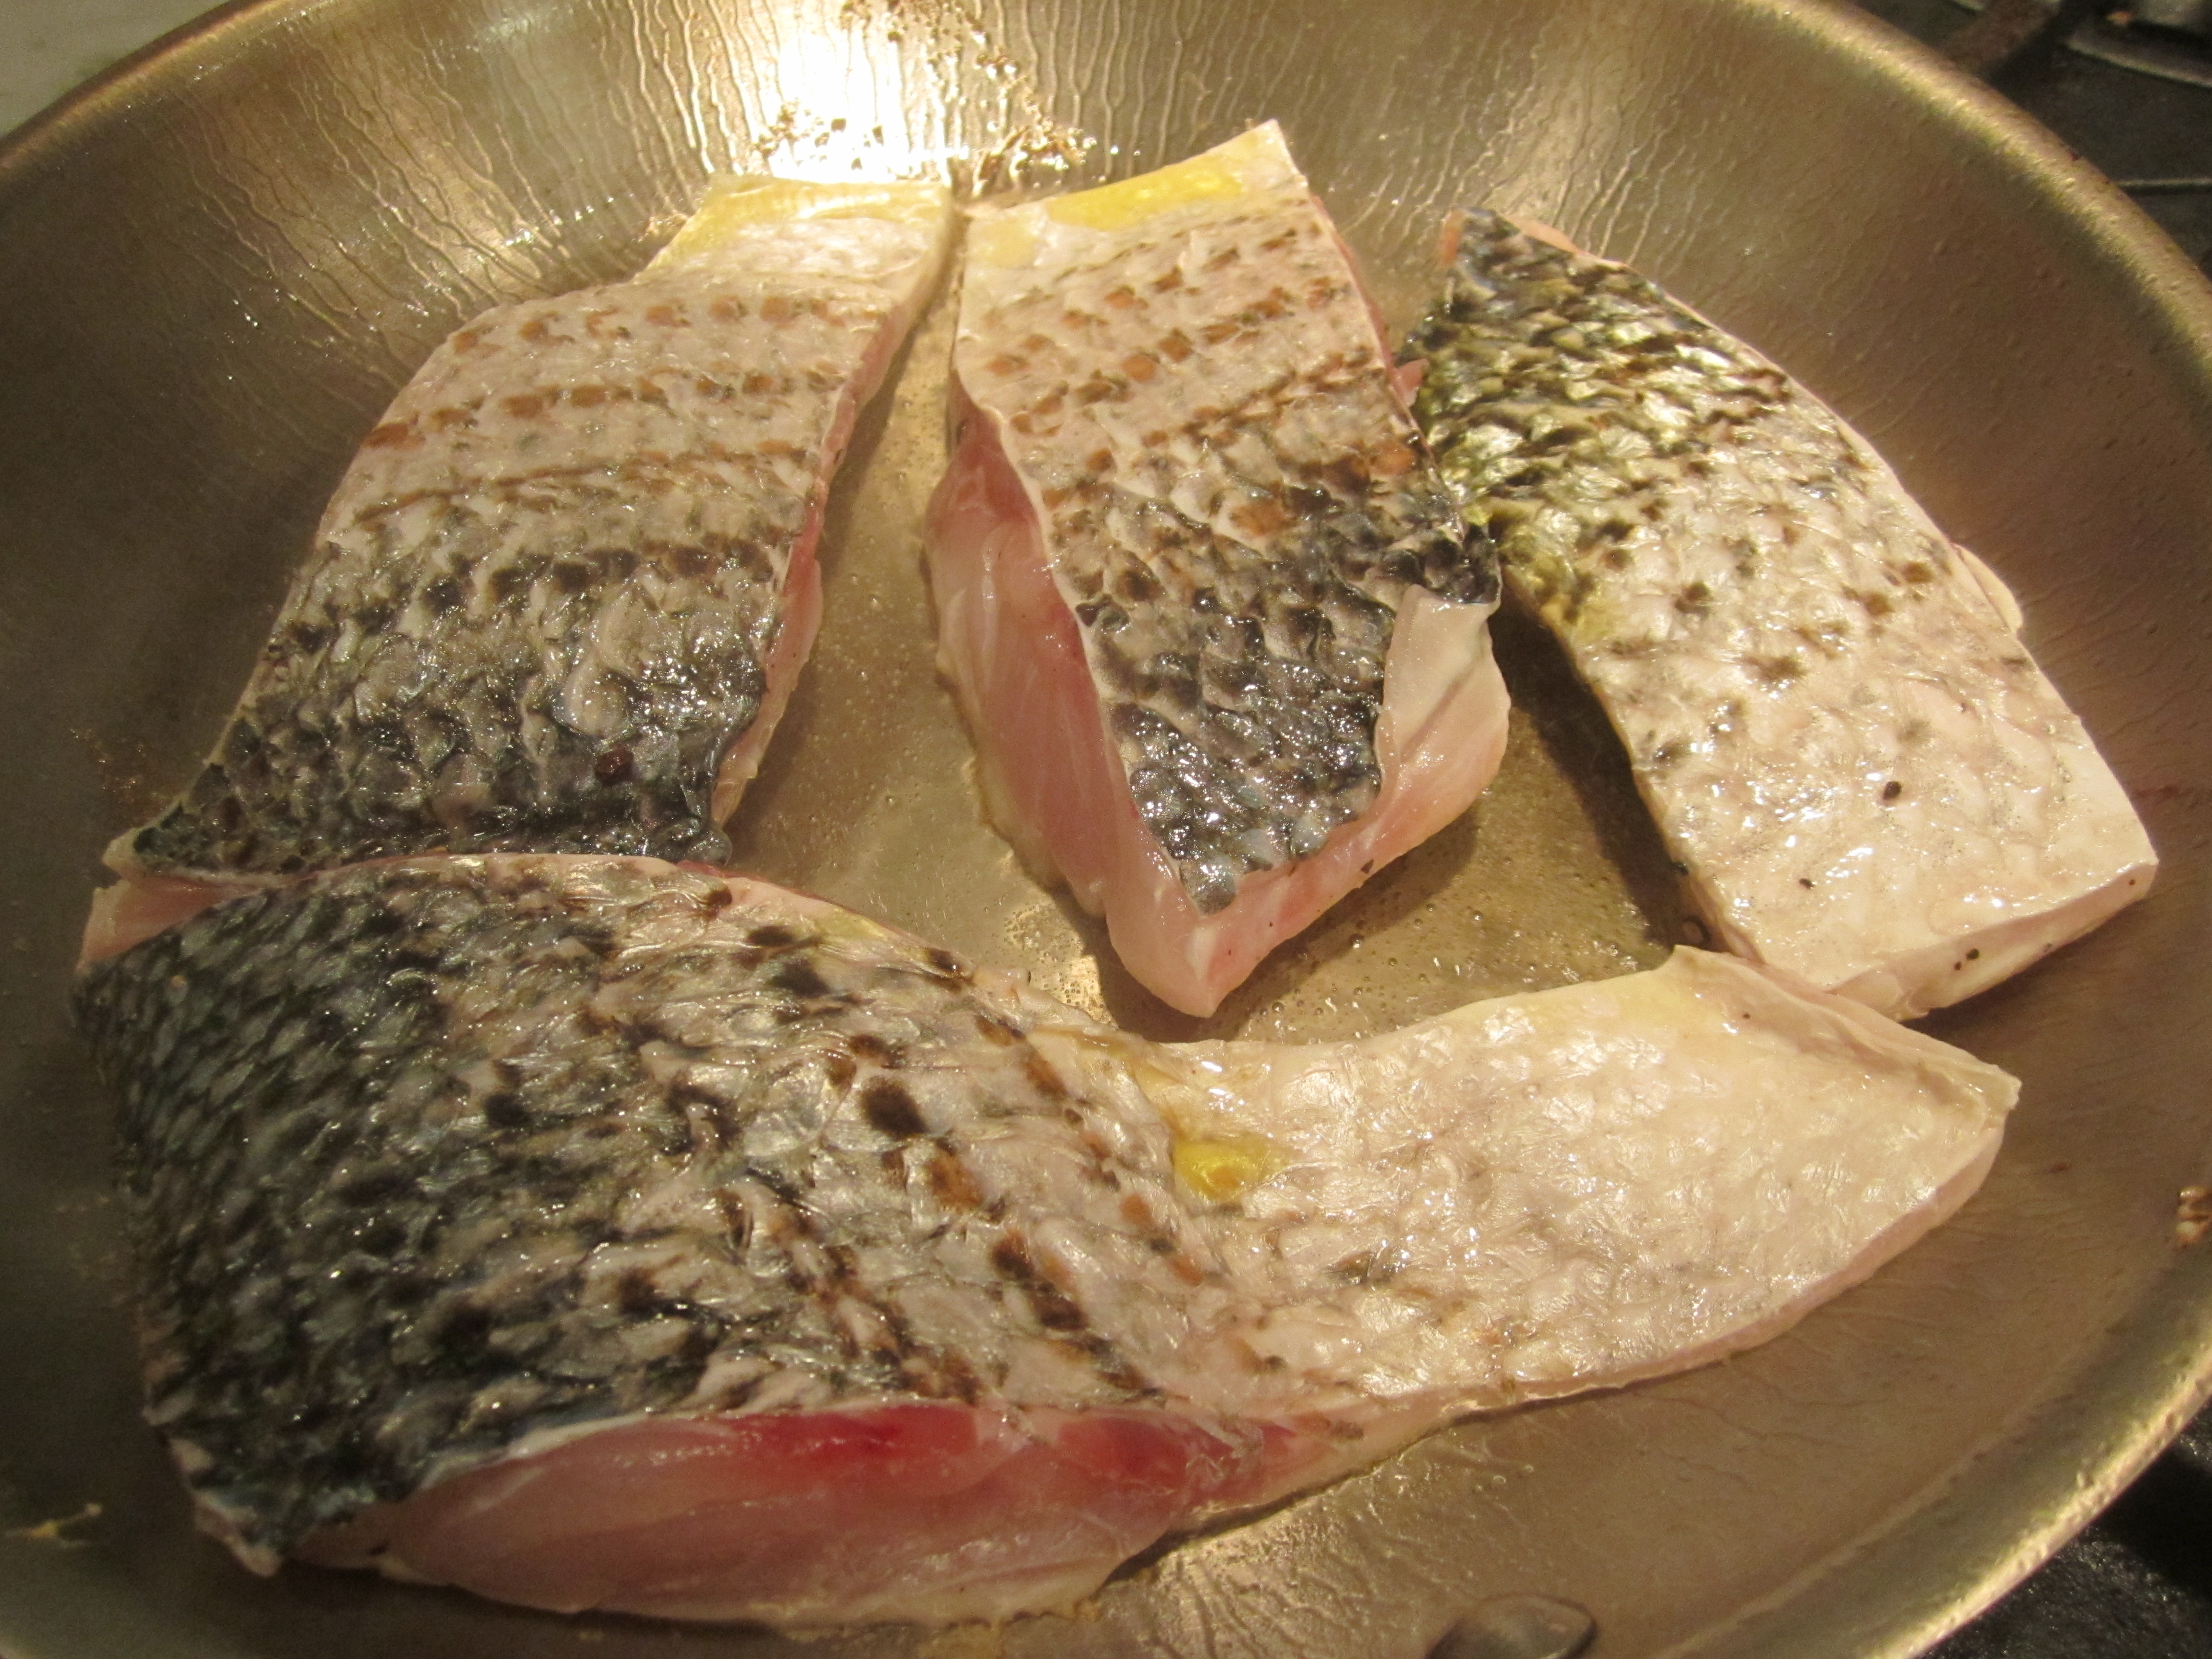 Sear For About 3 Minutes On High Heat, Then, Without Turning The Fish,  Place Skillet In Preheated 450 Degree Oven For About 10 Minutes (depending  On The